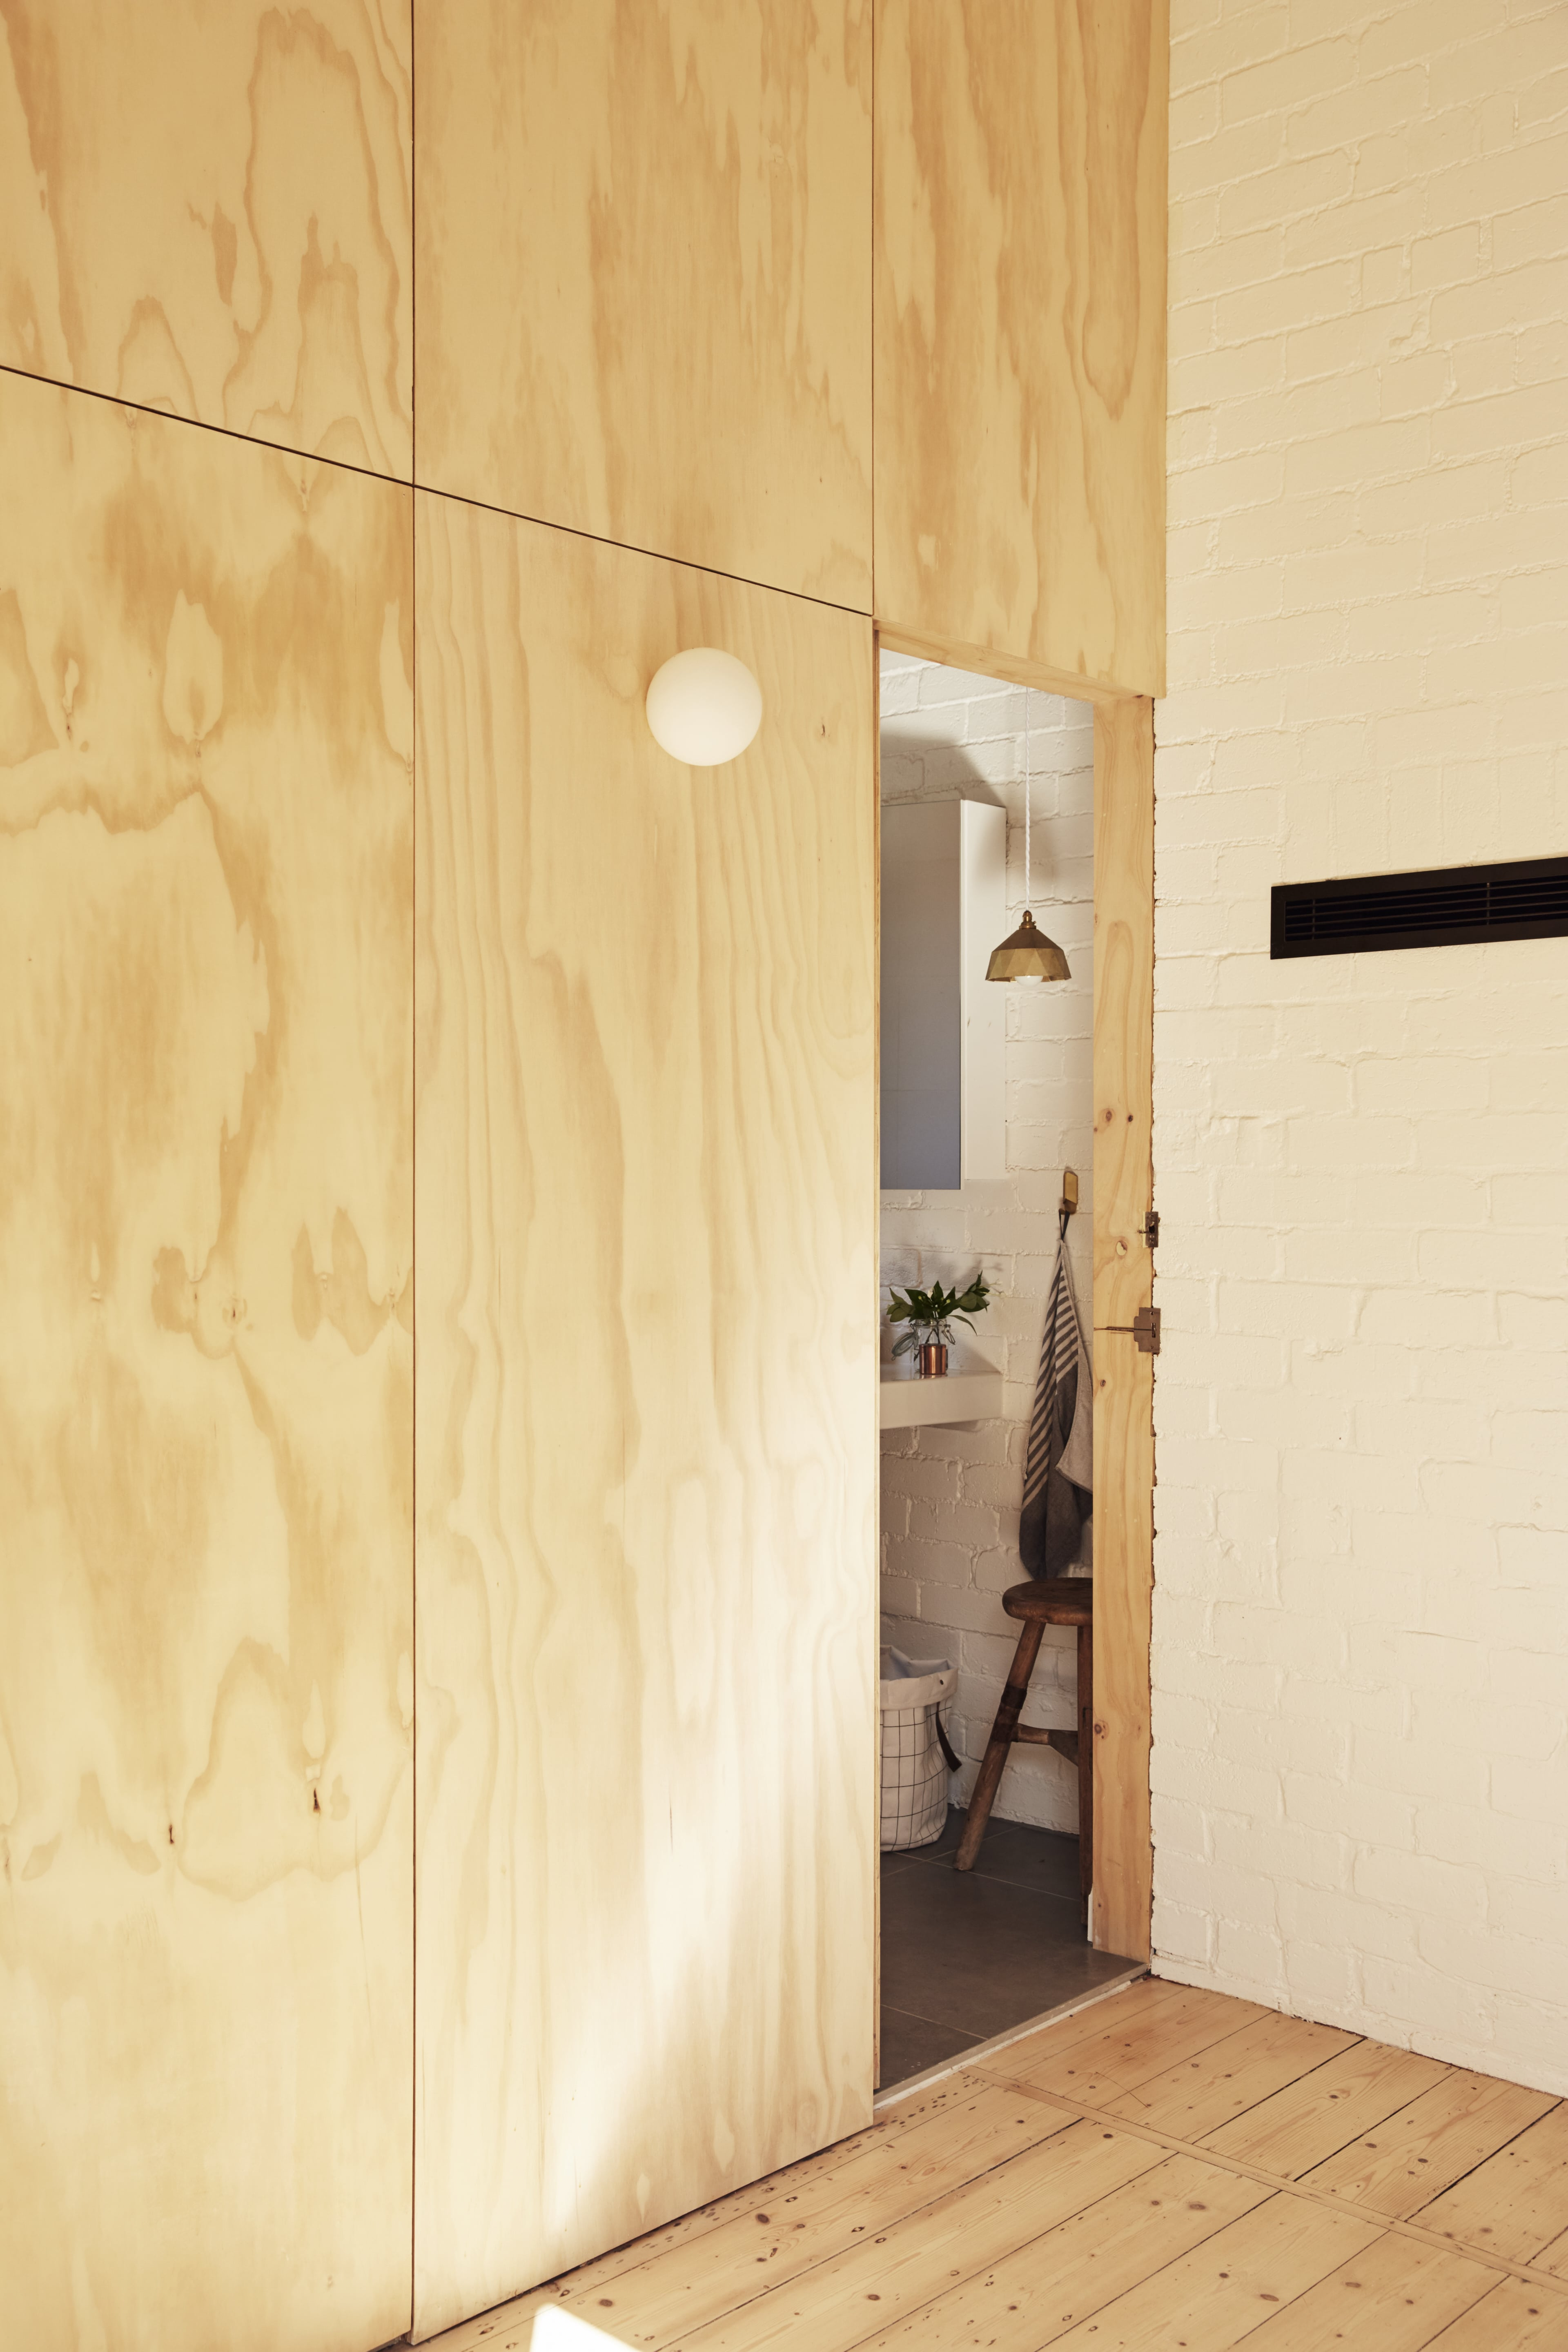 Gallery Of St Kilda East House By Claire Scorpo Local Australian Bespoke Architecture & Interiors Melbourne Image 5